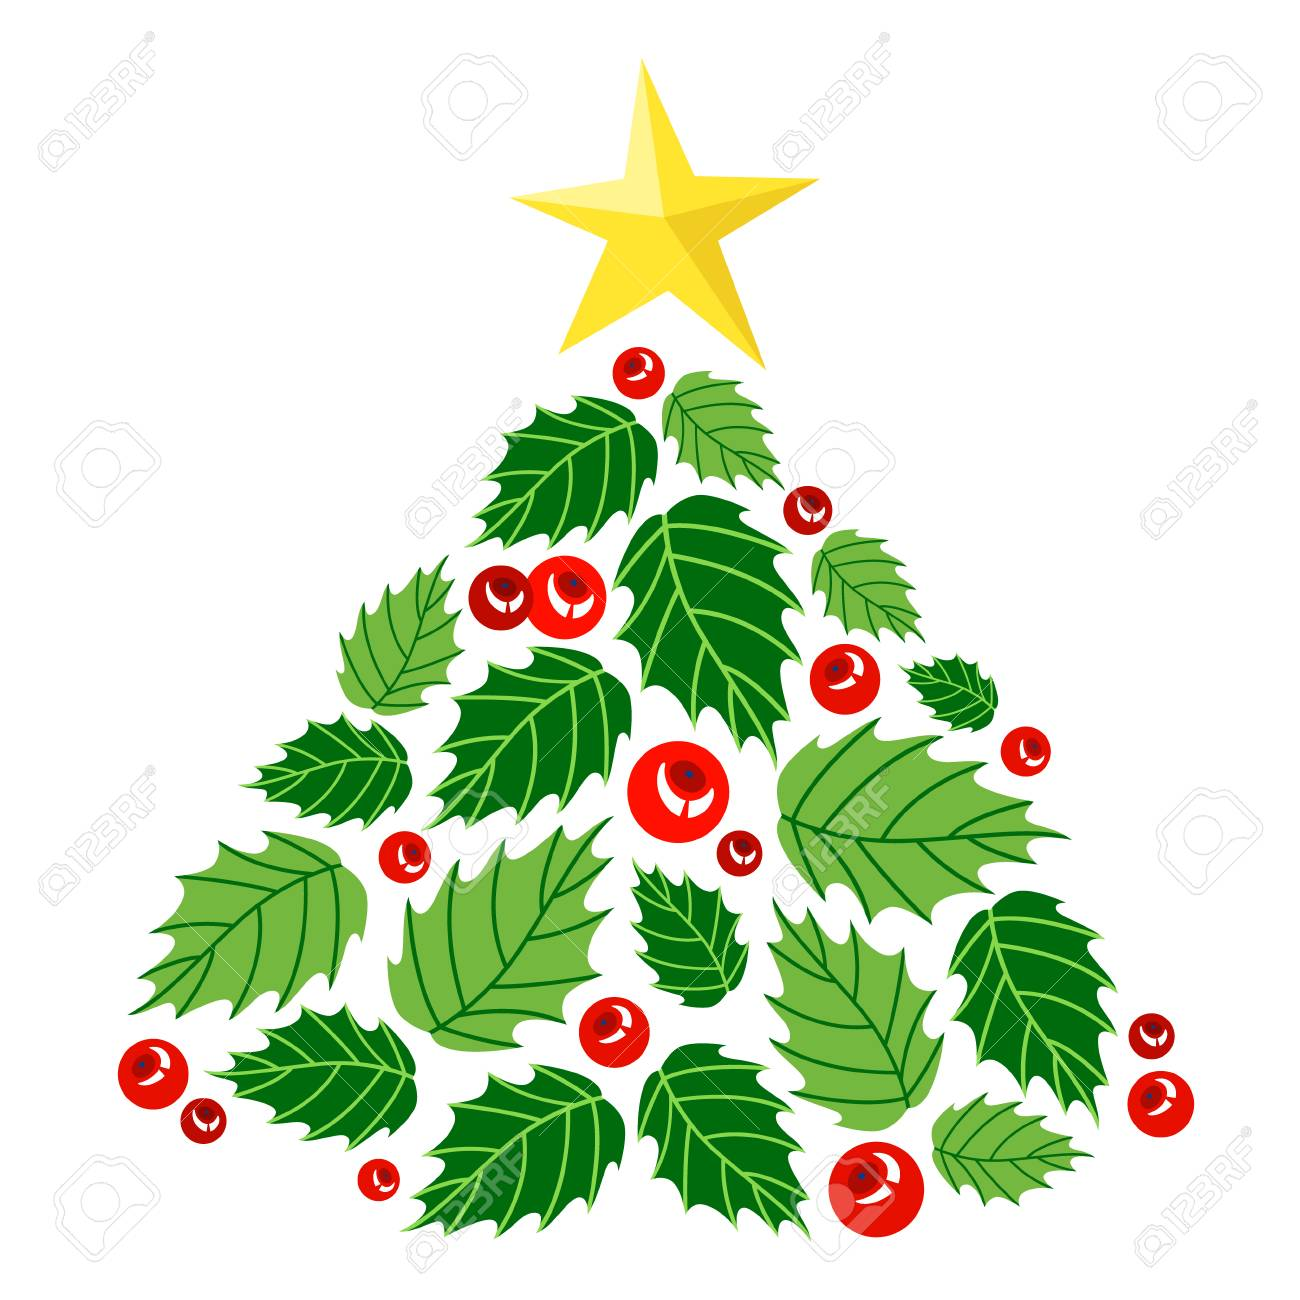 Cute Christmas Tree Made Of Holly Berry Leaves And Berries Beautiful